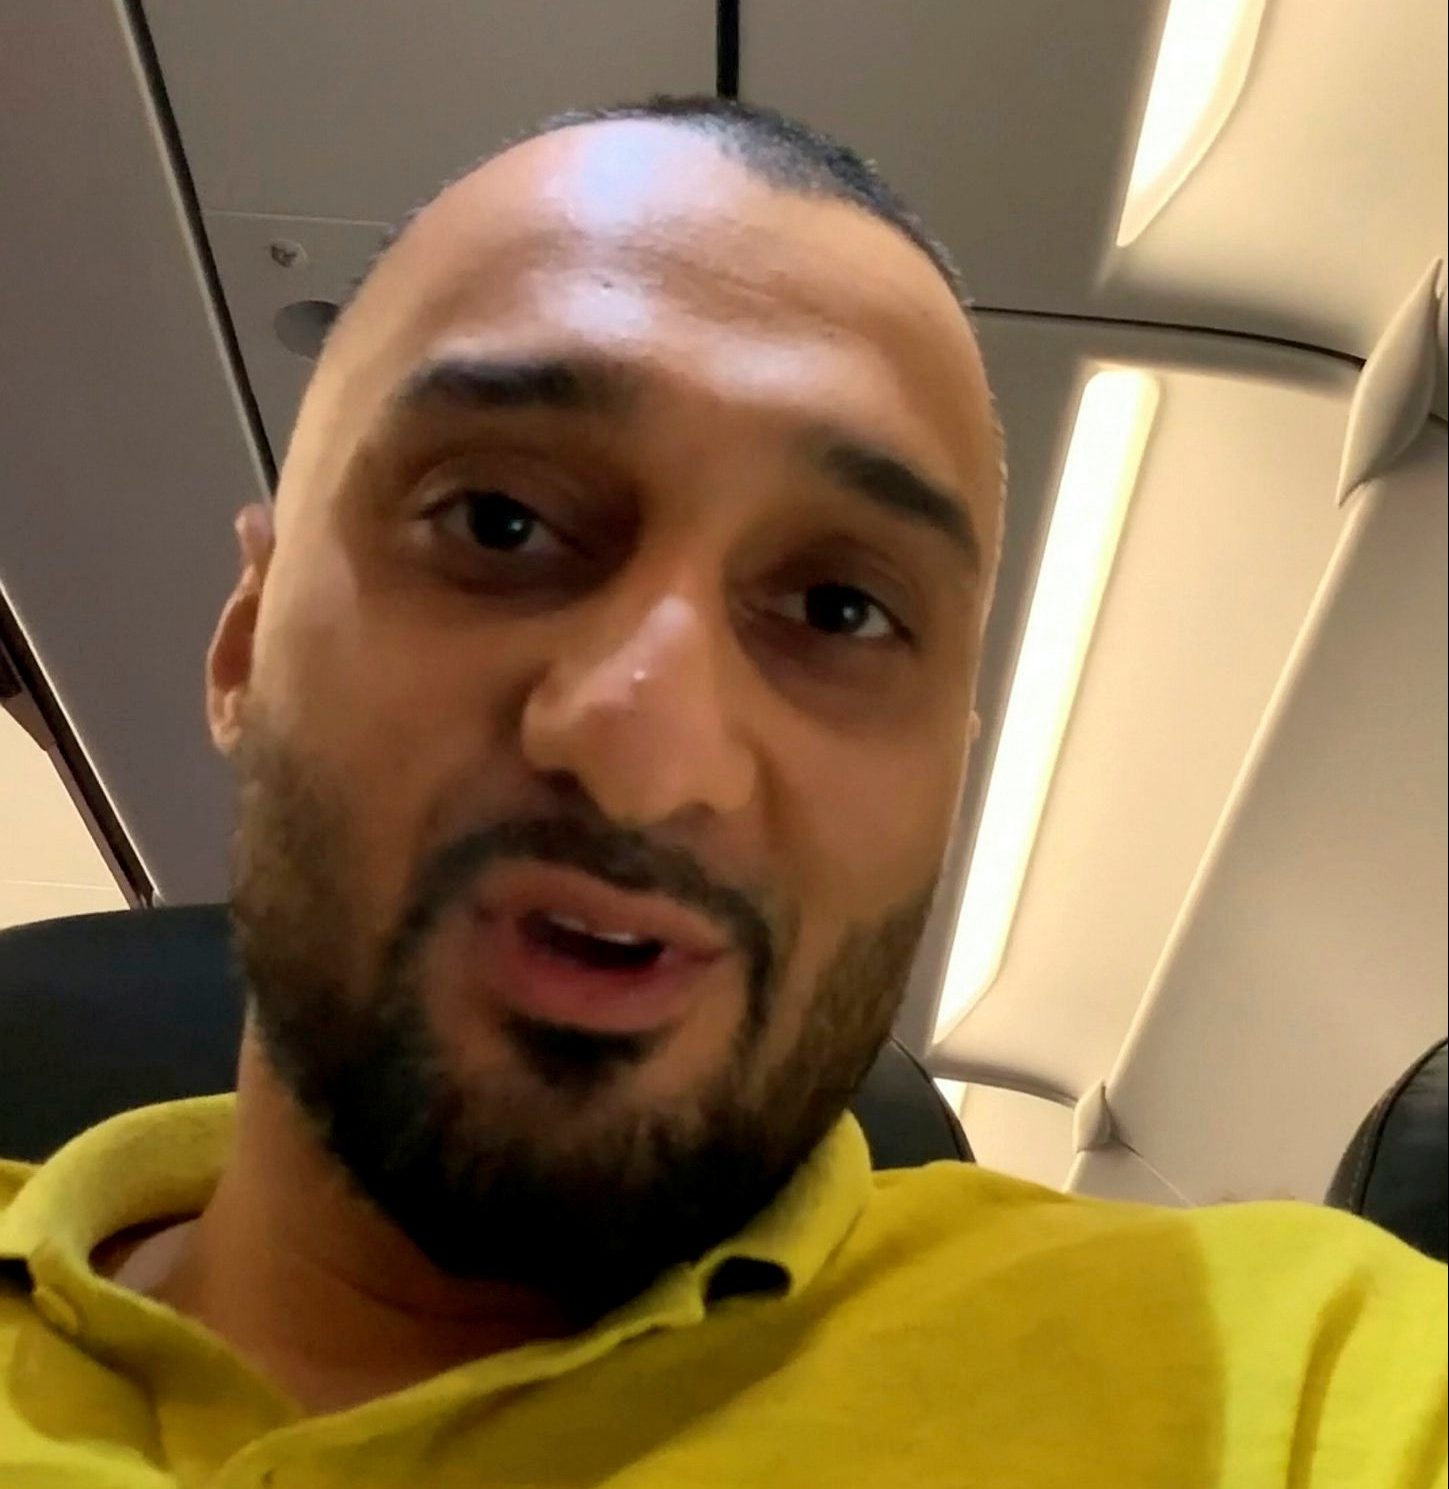 """Video grab of Adil Kayani, 35, talking to air cabin crew after a steward burst in on him on the toilet on an Easyjet flight from Marrakesh to Manchester .See SWNS story SWTPflight. An airline passenger was offered ?500 and an apology after a steward burst in on him using the toilet mid-flight.Adil Kayani, 35, was left red-faced when an EasyJet steward barged in on him whilst he was sat on the loo, with his trousers around his ankles.EasyJet said staff did it for ?safety and security reasons? after Adil had been in there for more than 15 minutes.But Adil said he was mortified and was left """"exposed"""" after the male staff member unlocked the door from the outside, two hours into a flight from Marrakesh."""